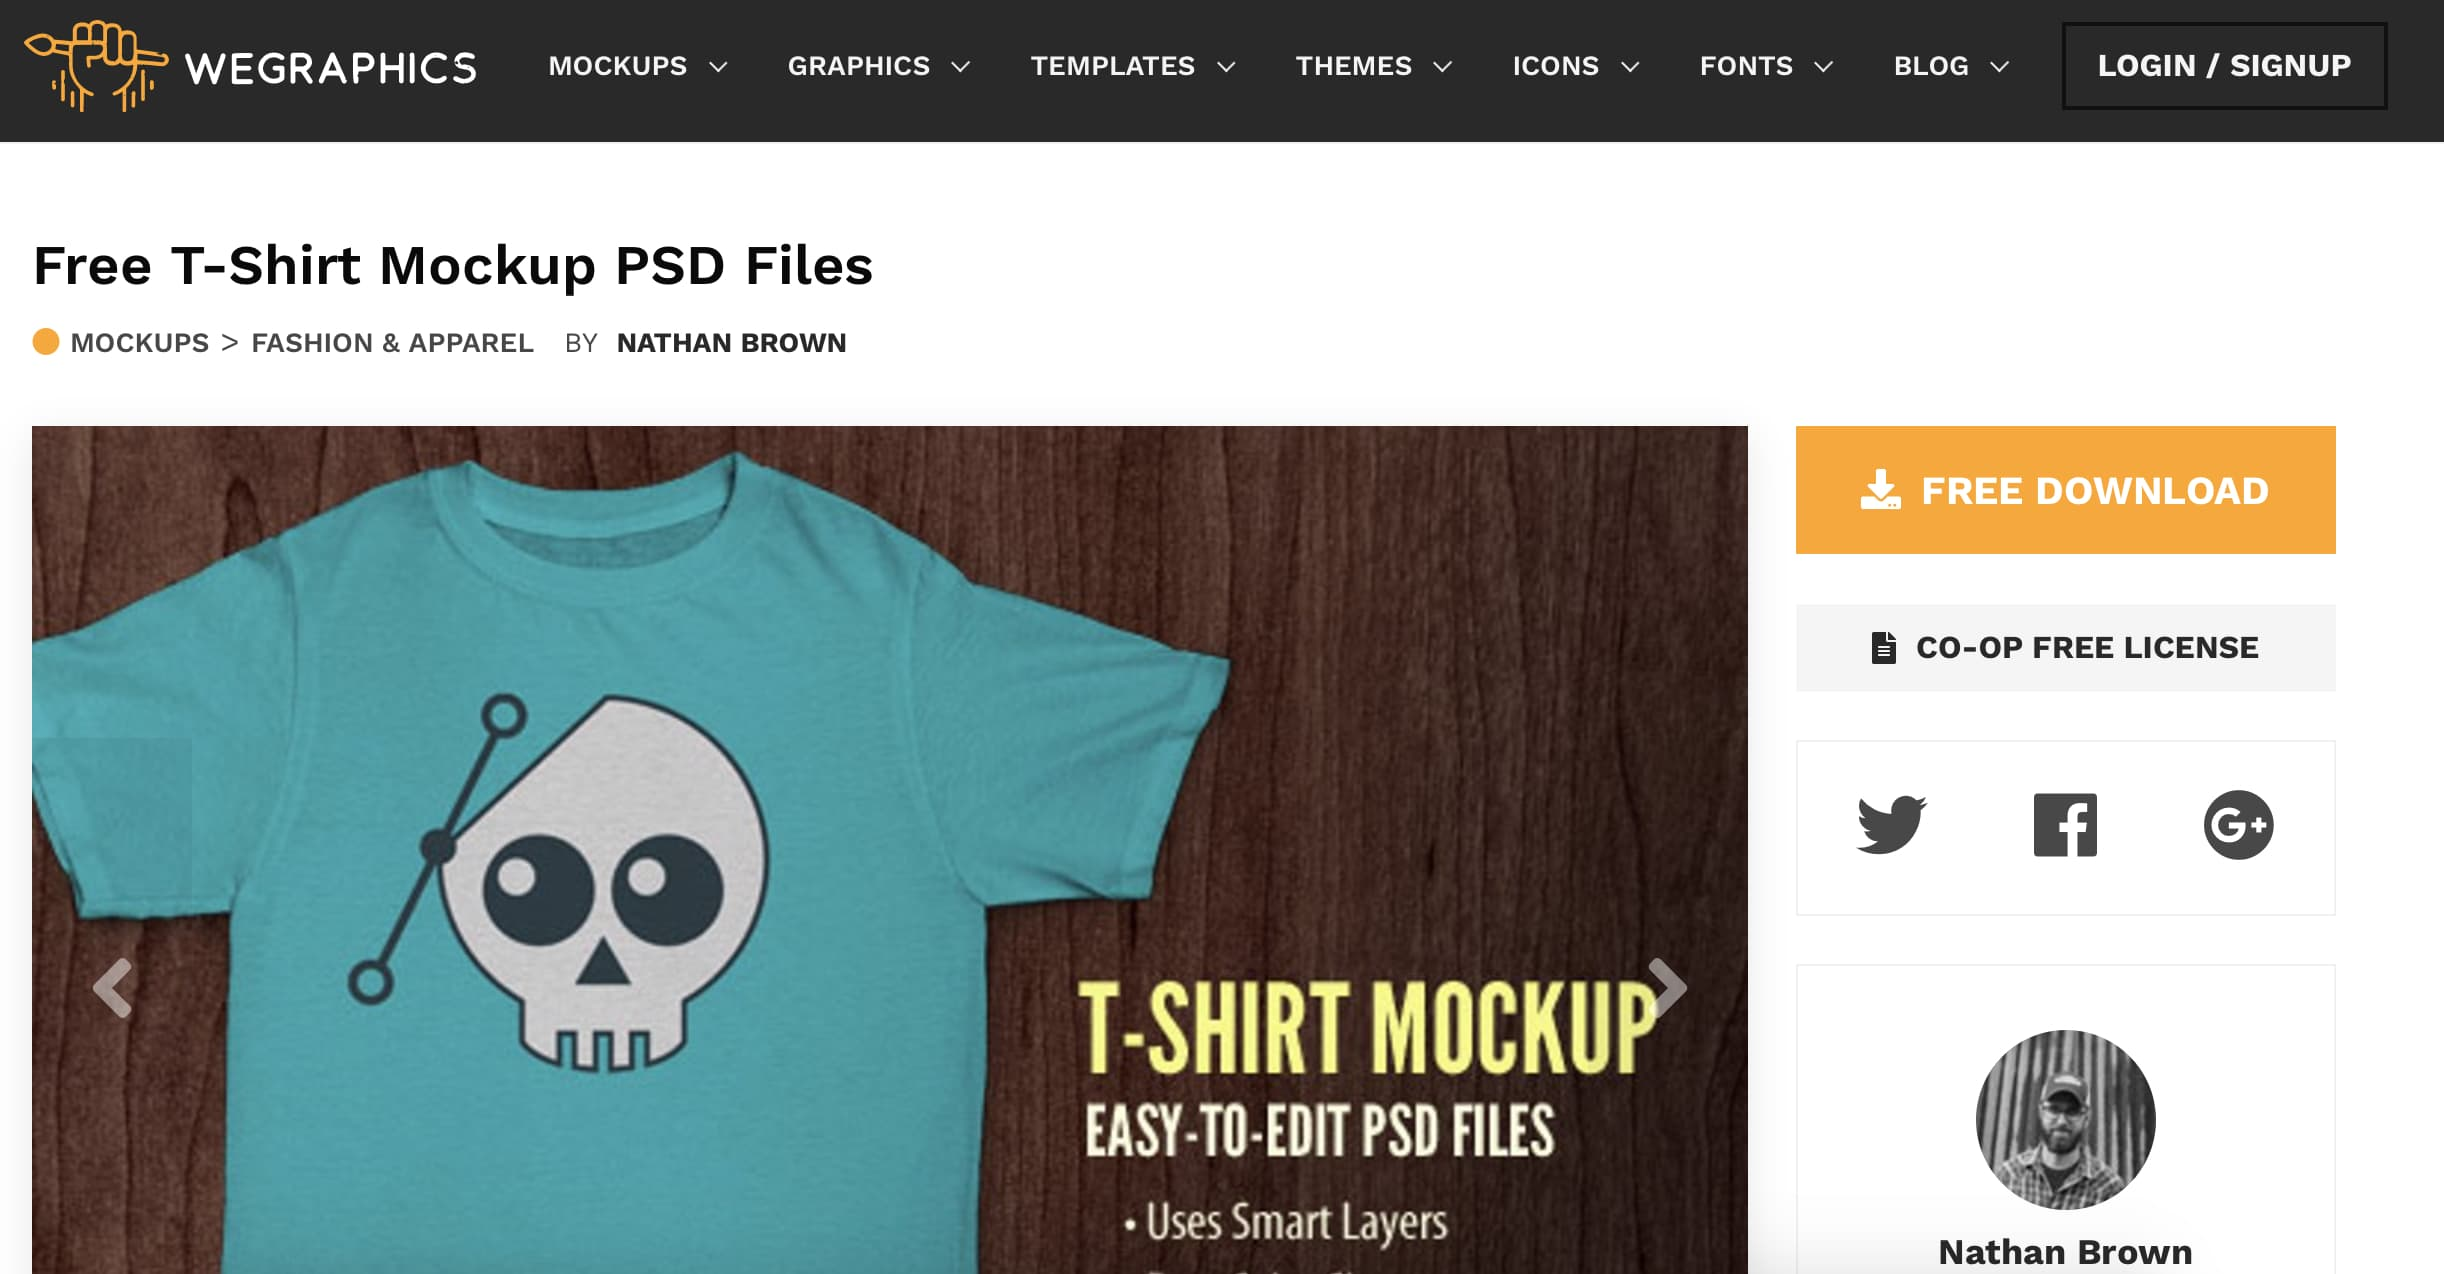 Camiseta-mockup-gratis-We-Graphics